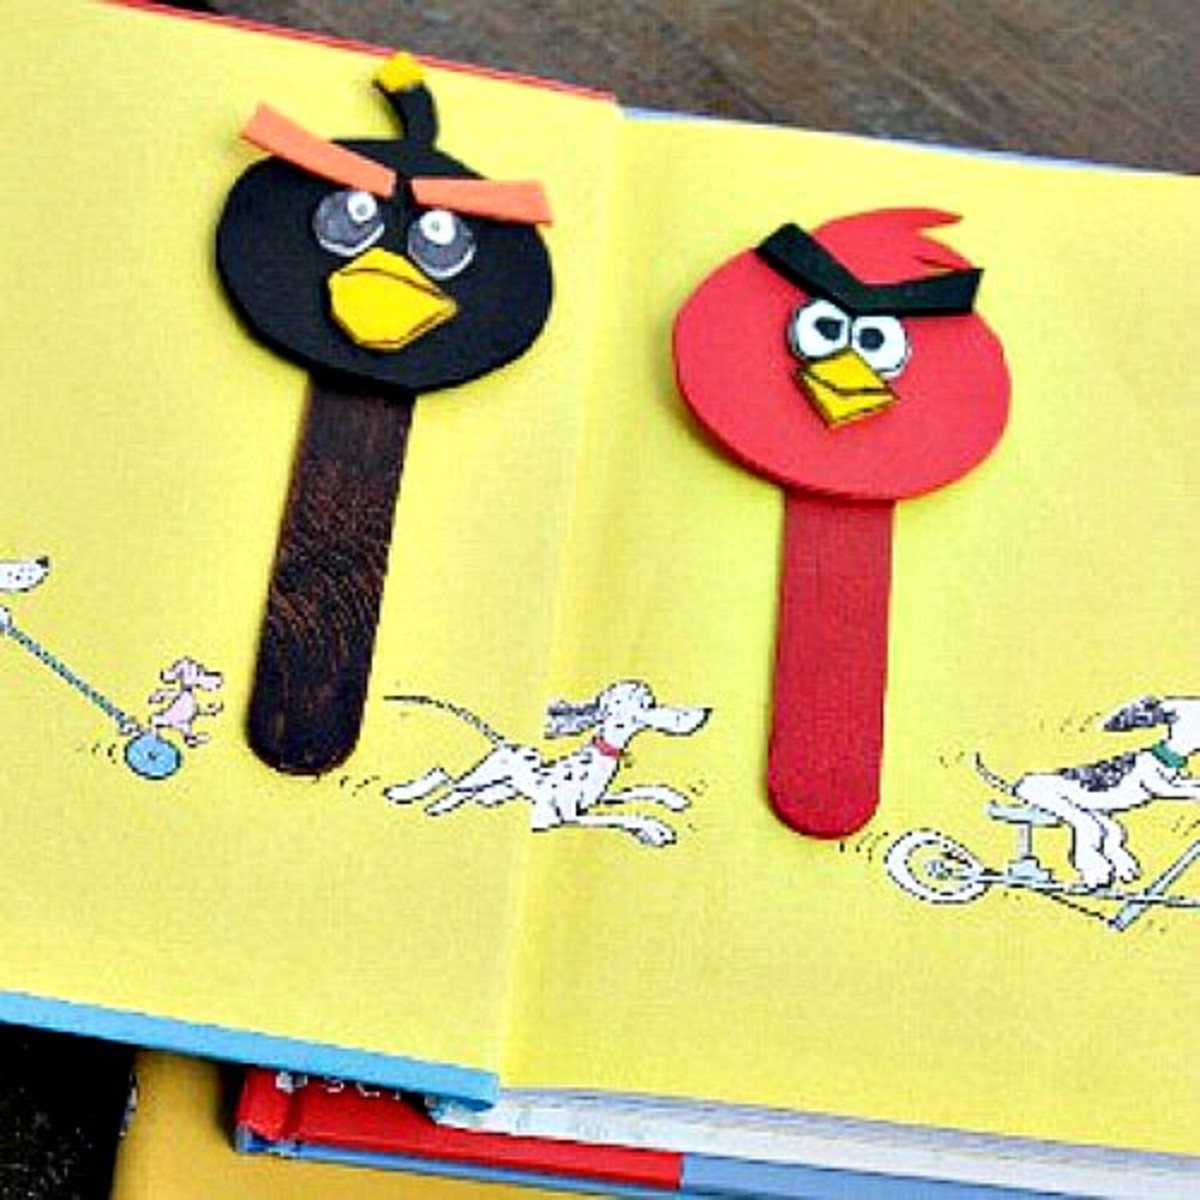 In this article youu0027ll find so many different and fun Angry Birds crafts for kids to make. Find great party activities with the Angry Birds theme and crafts ... & 30 Cute and Easy Angry Birds Crafts | HubPages